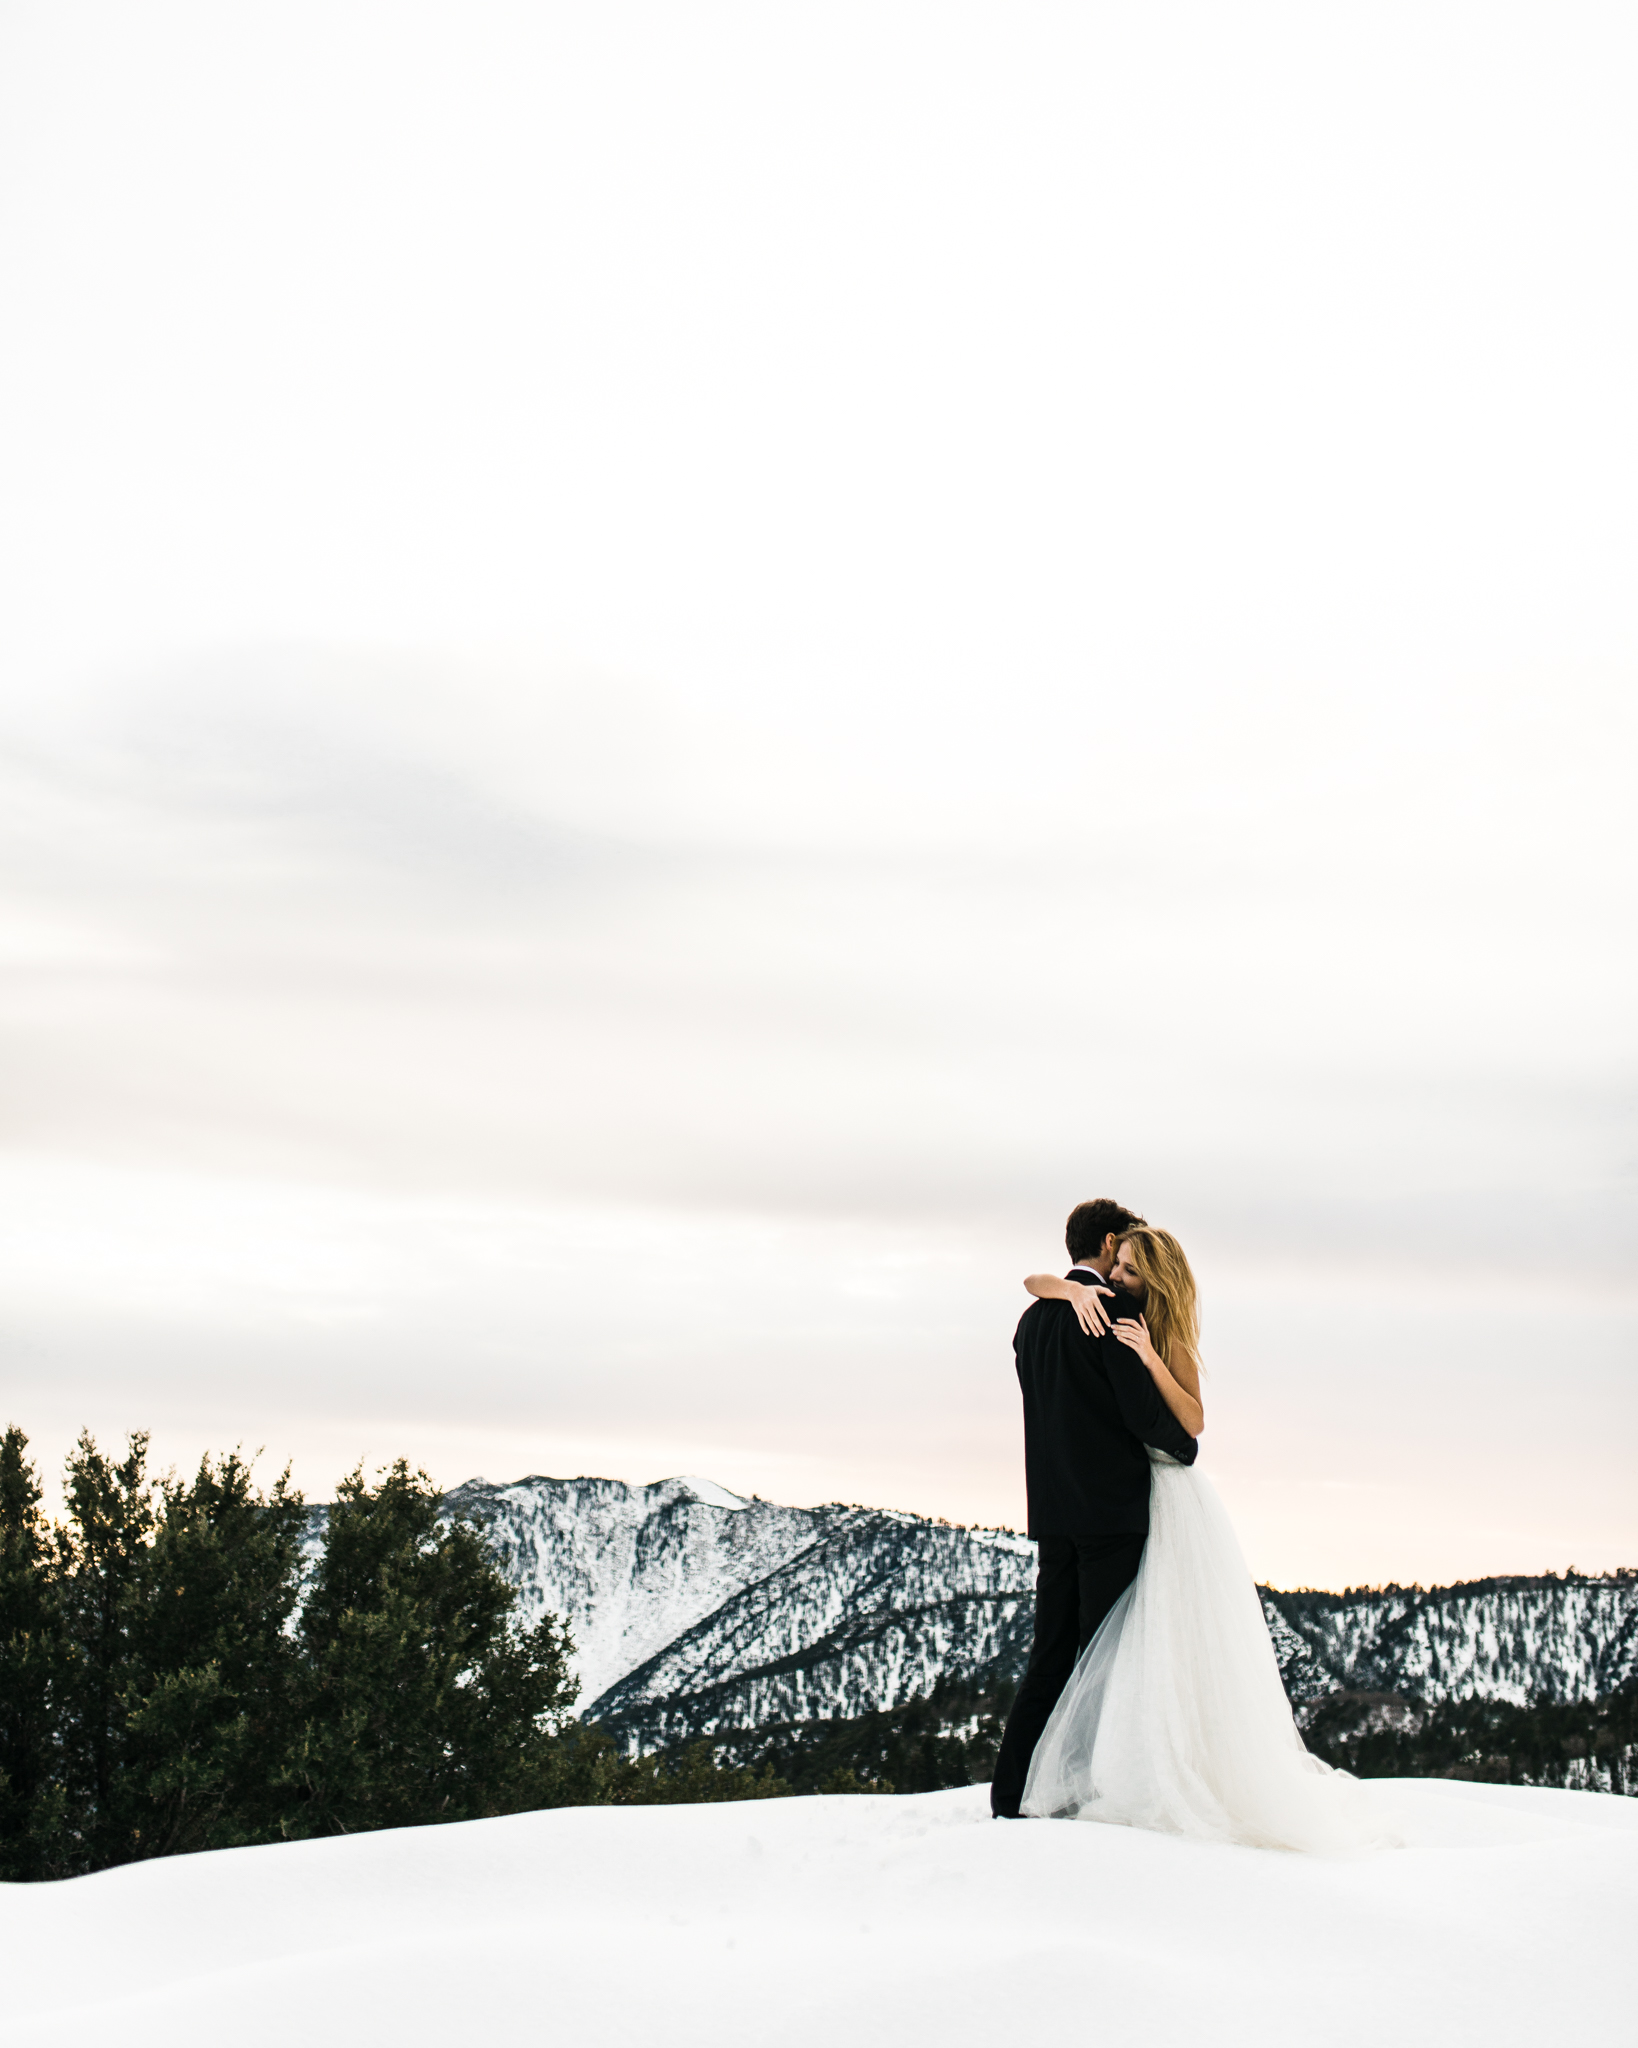 ©Isaiah & Taylor Photography - Ben & Kadin Honeymoon-039.jpg